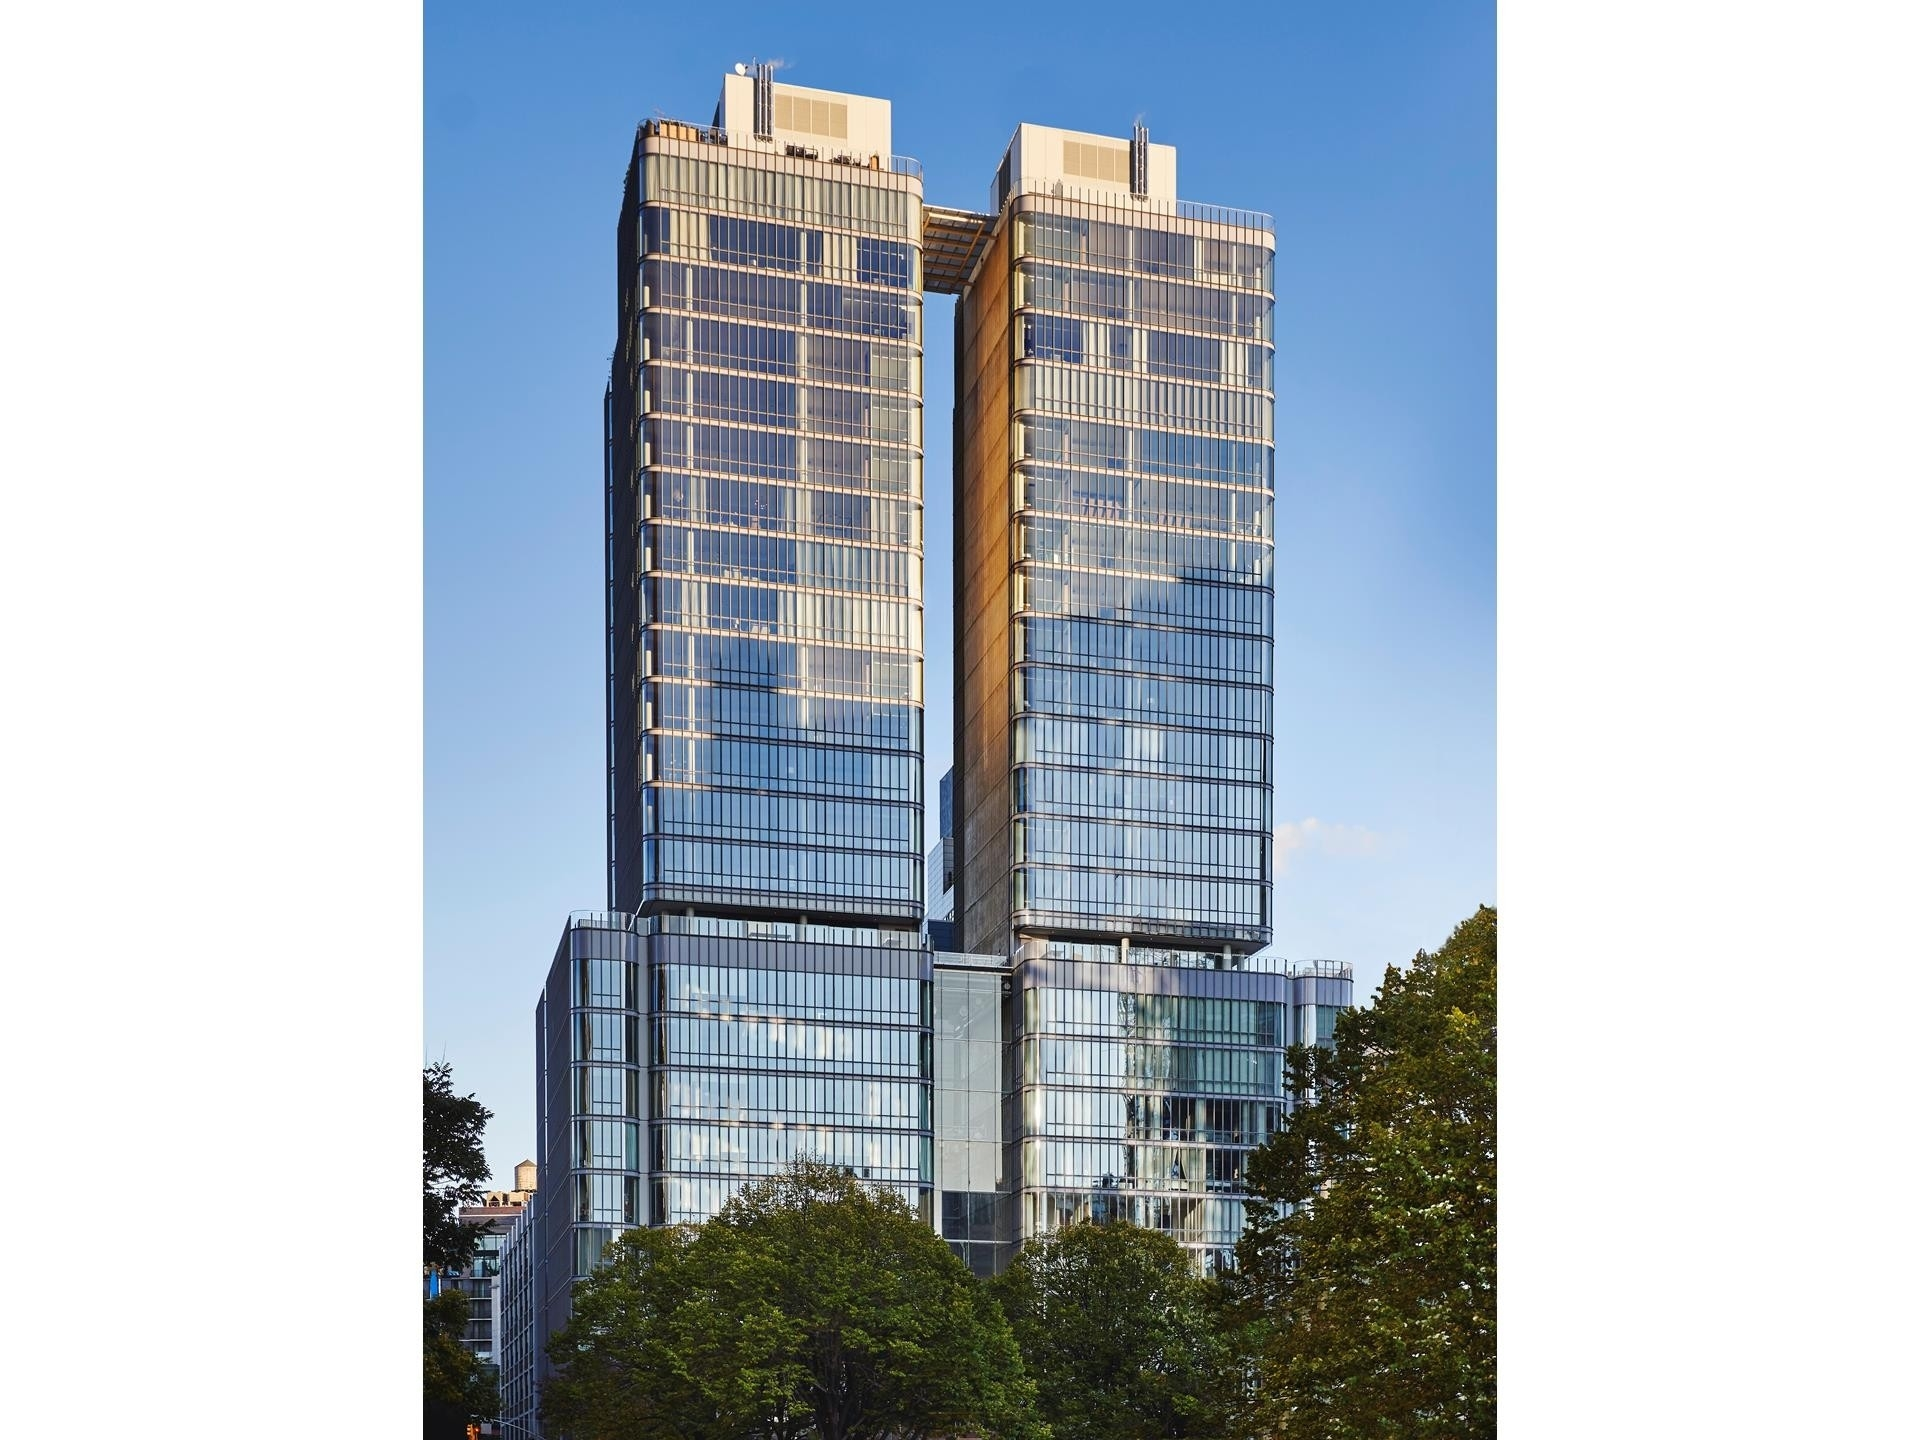 Property at 565 Broome St, S16A Hudson Square, New York, NY 10013